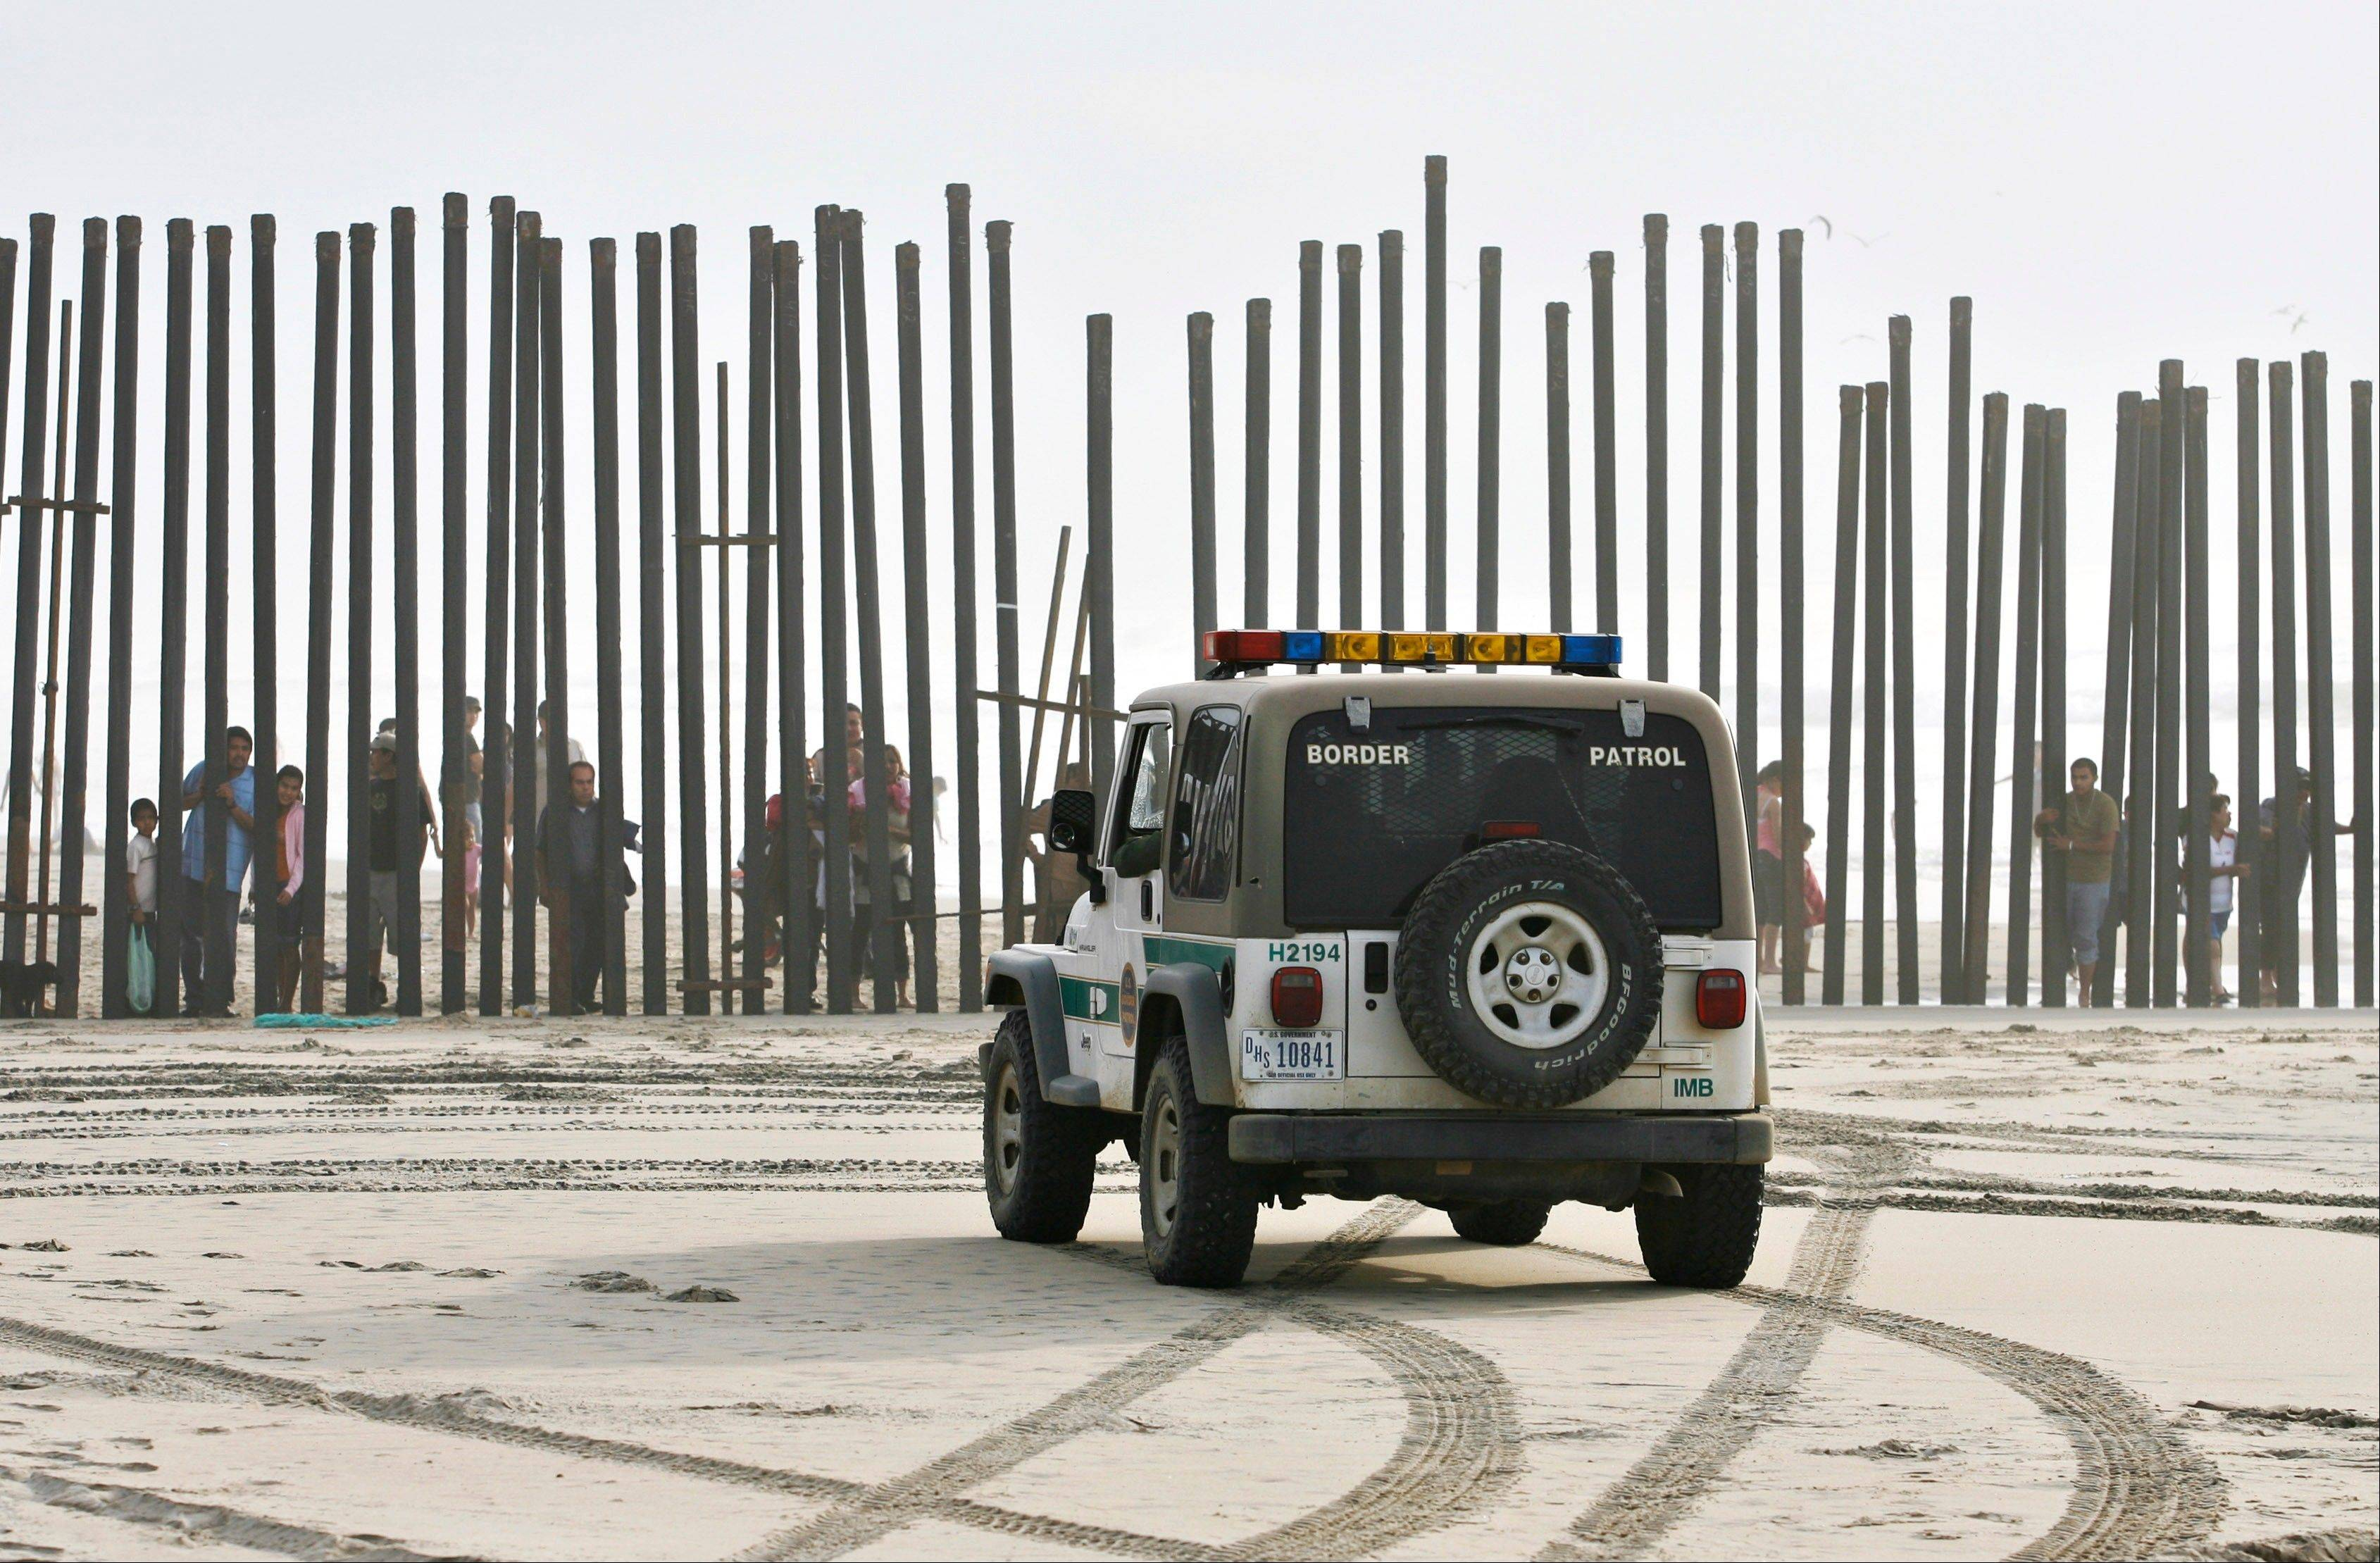 Associated Press/Jan. 18, 2009A U.S. Border Patrol vehicle sits parked in front of a crowd of people peering through the U.S.-Mexico border fence at Border Field State Park in San Diego.